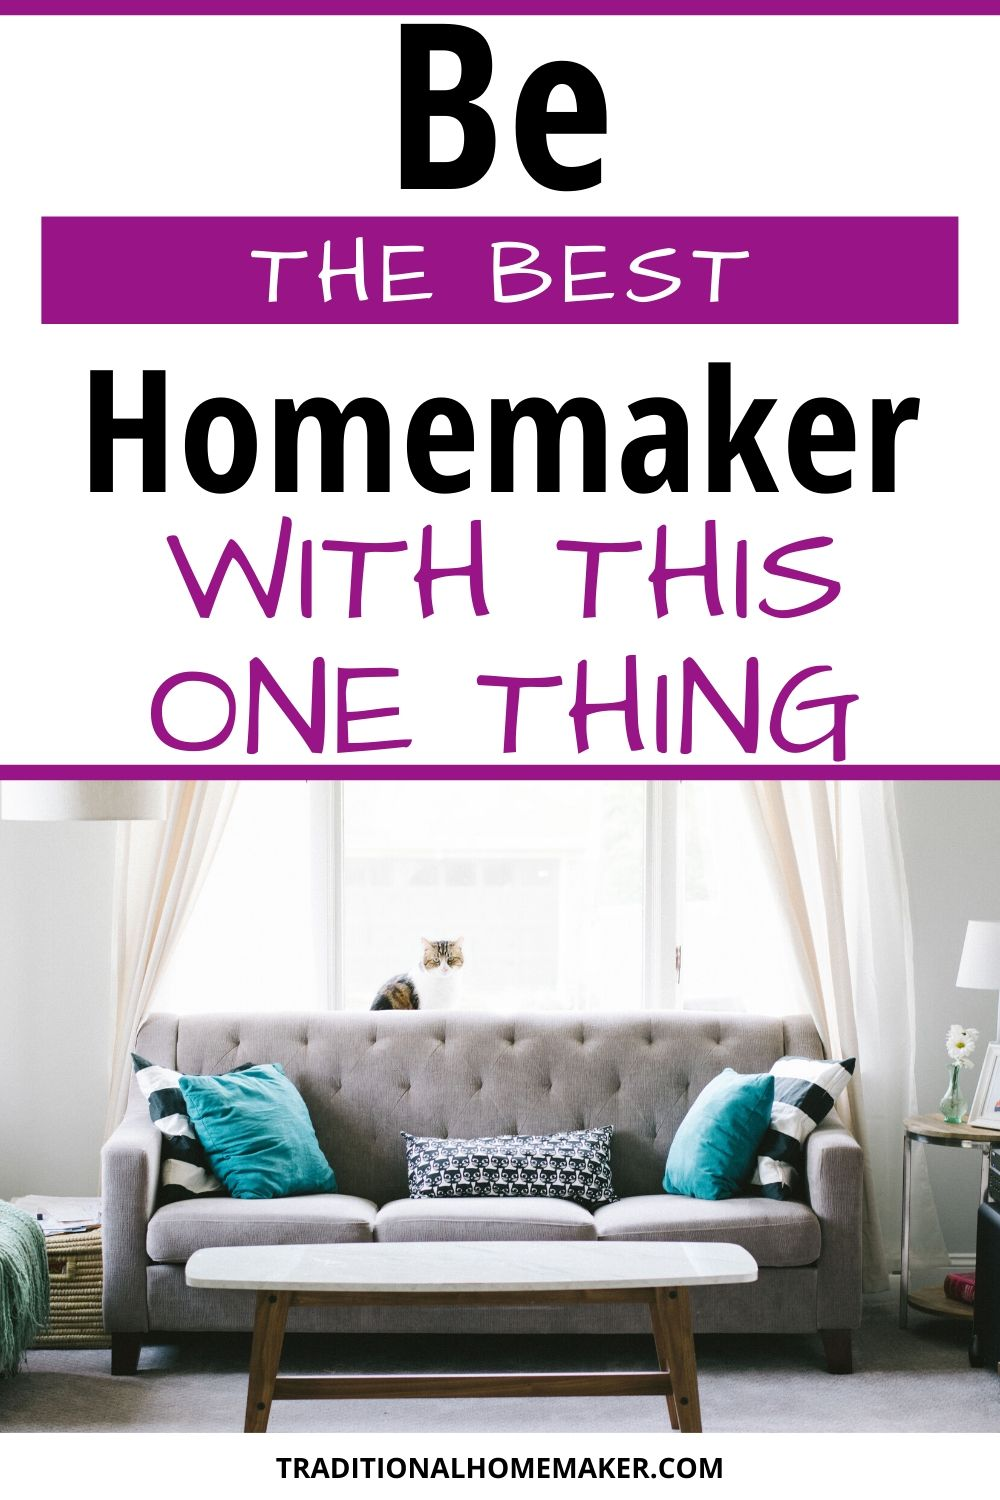 The one thing to make you the best homemaker isn't all the skills you have or the things you know. It's the one thing you truly have control of. Attitude.